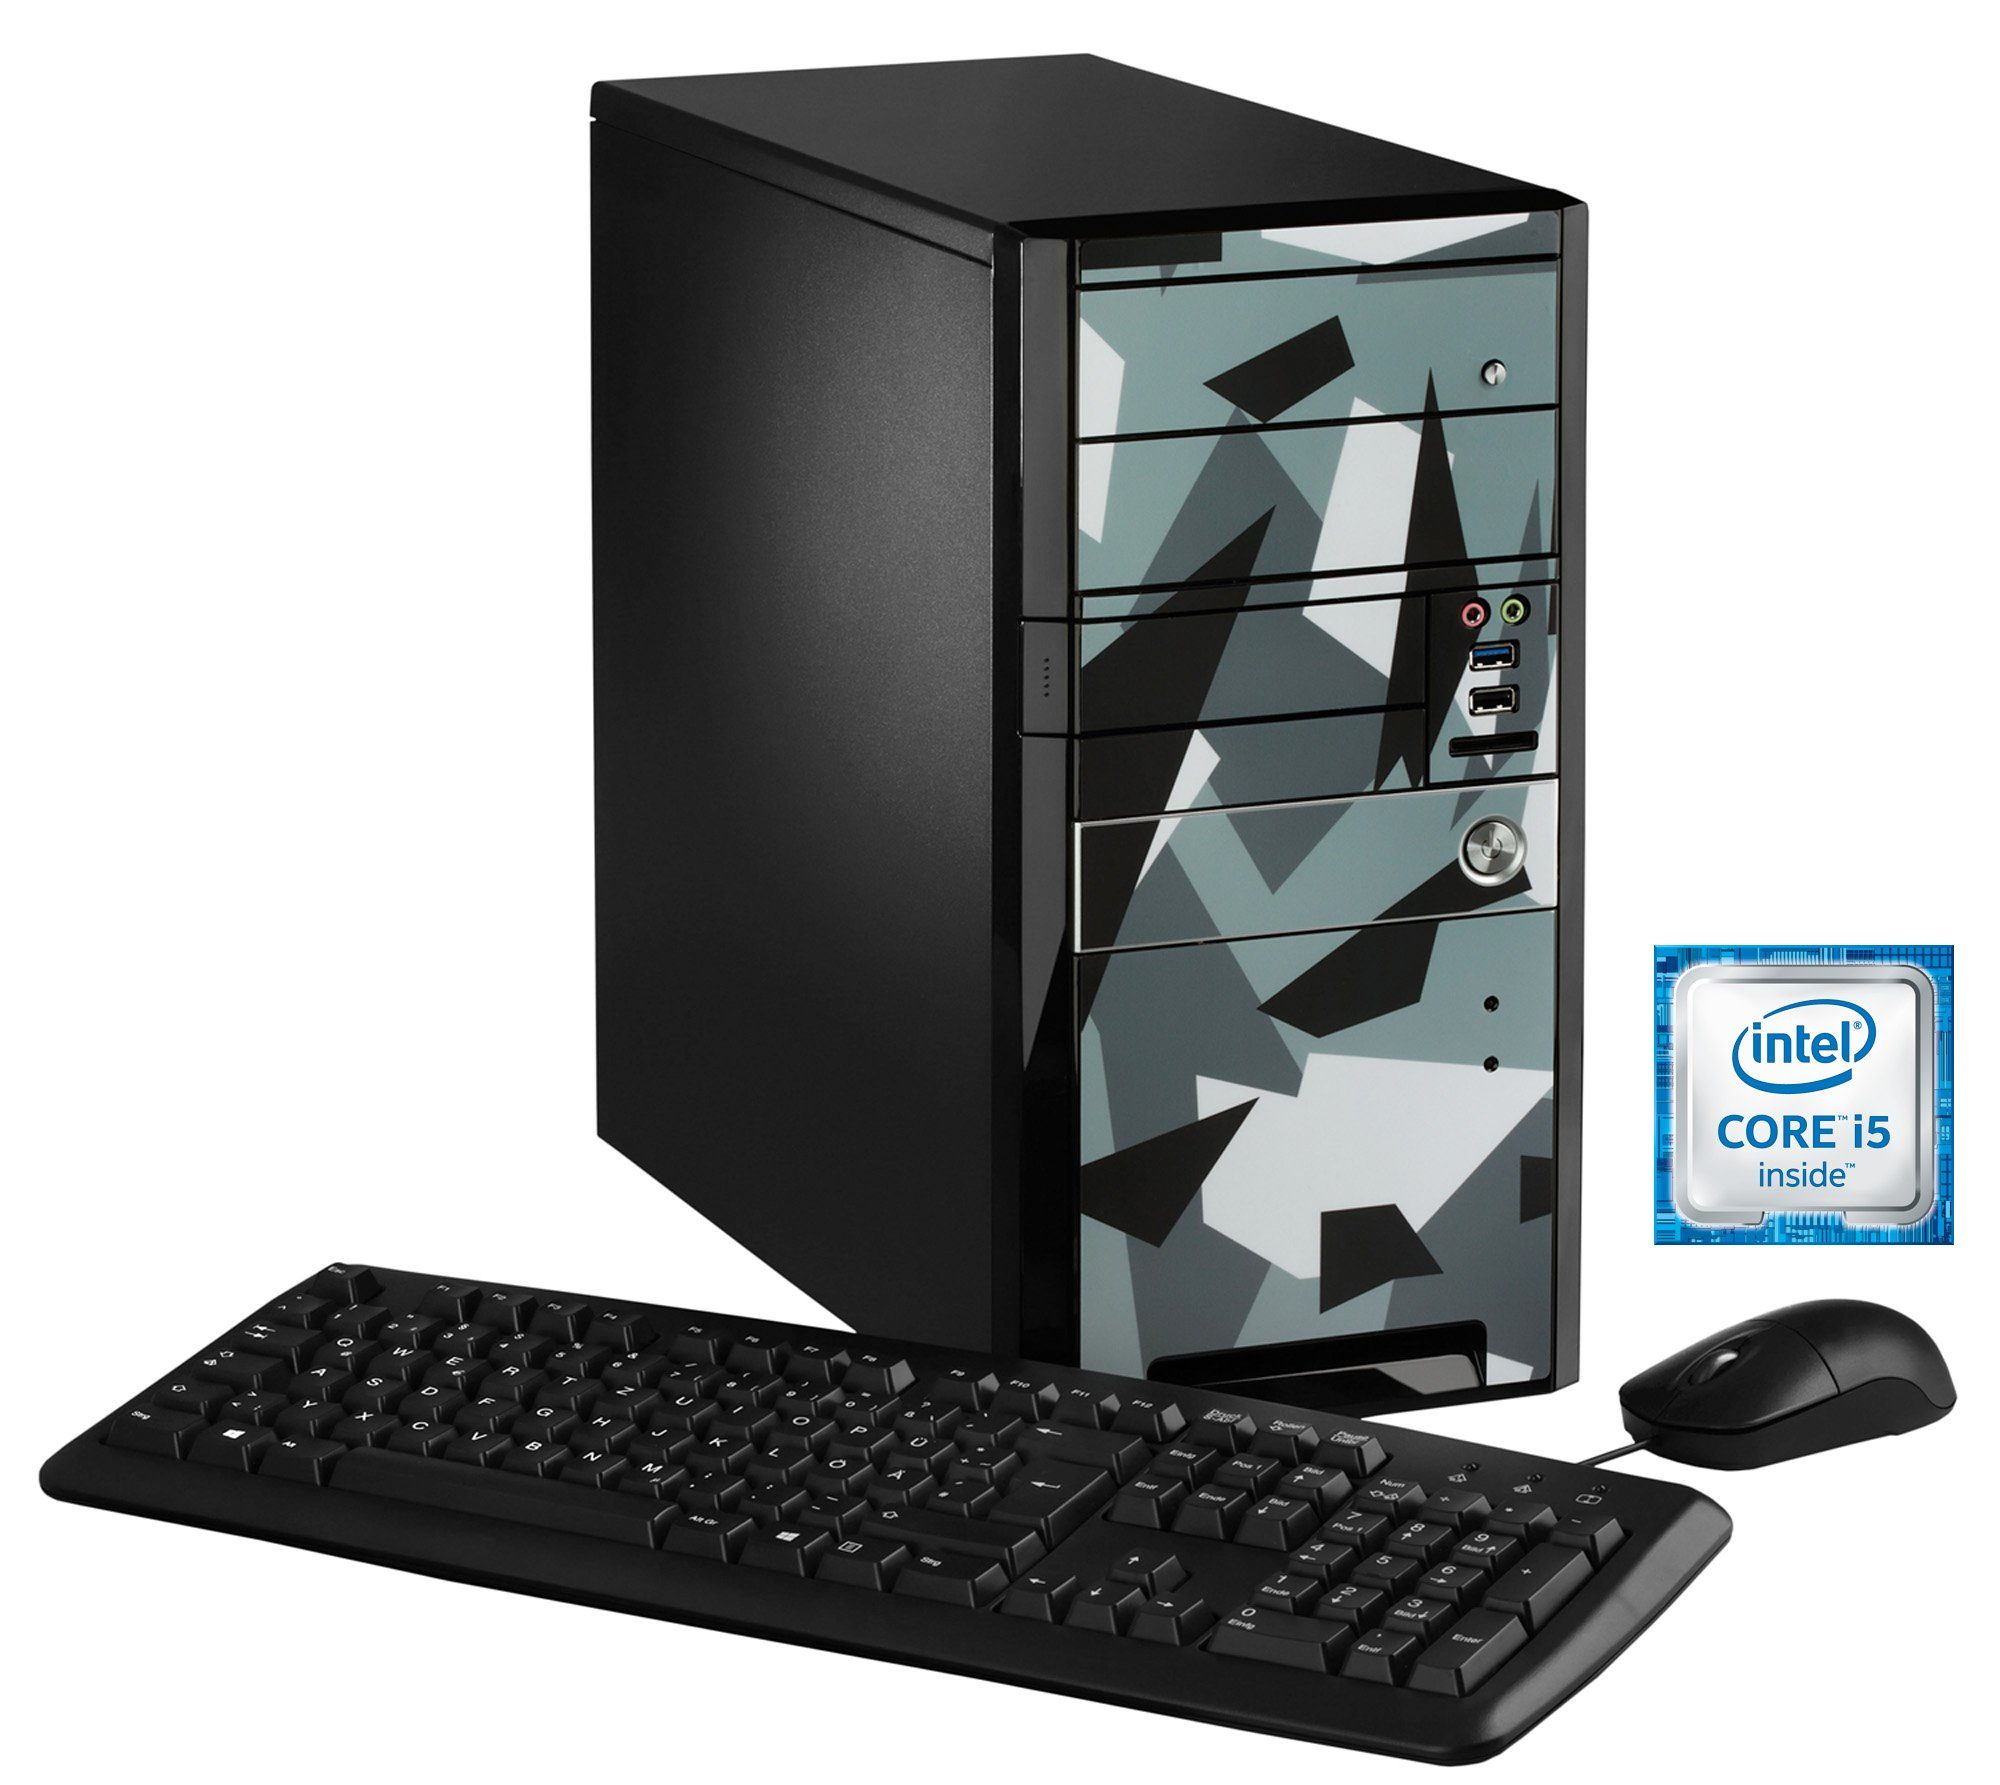 Hyrican PC Intel® i5-6600, 16GB, SSD + HDD, AMD Radeon RX 470 »Limited Edition - Ice 5281«